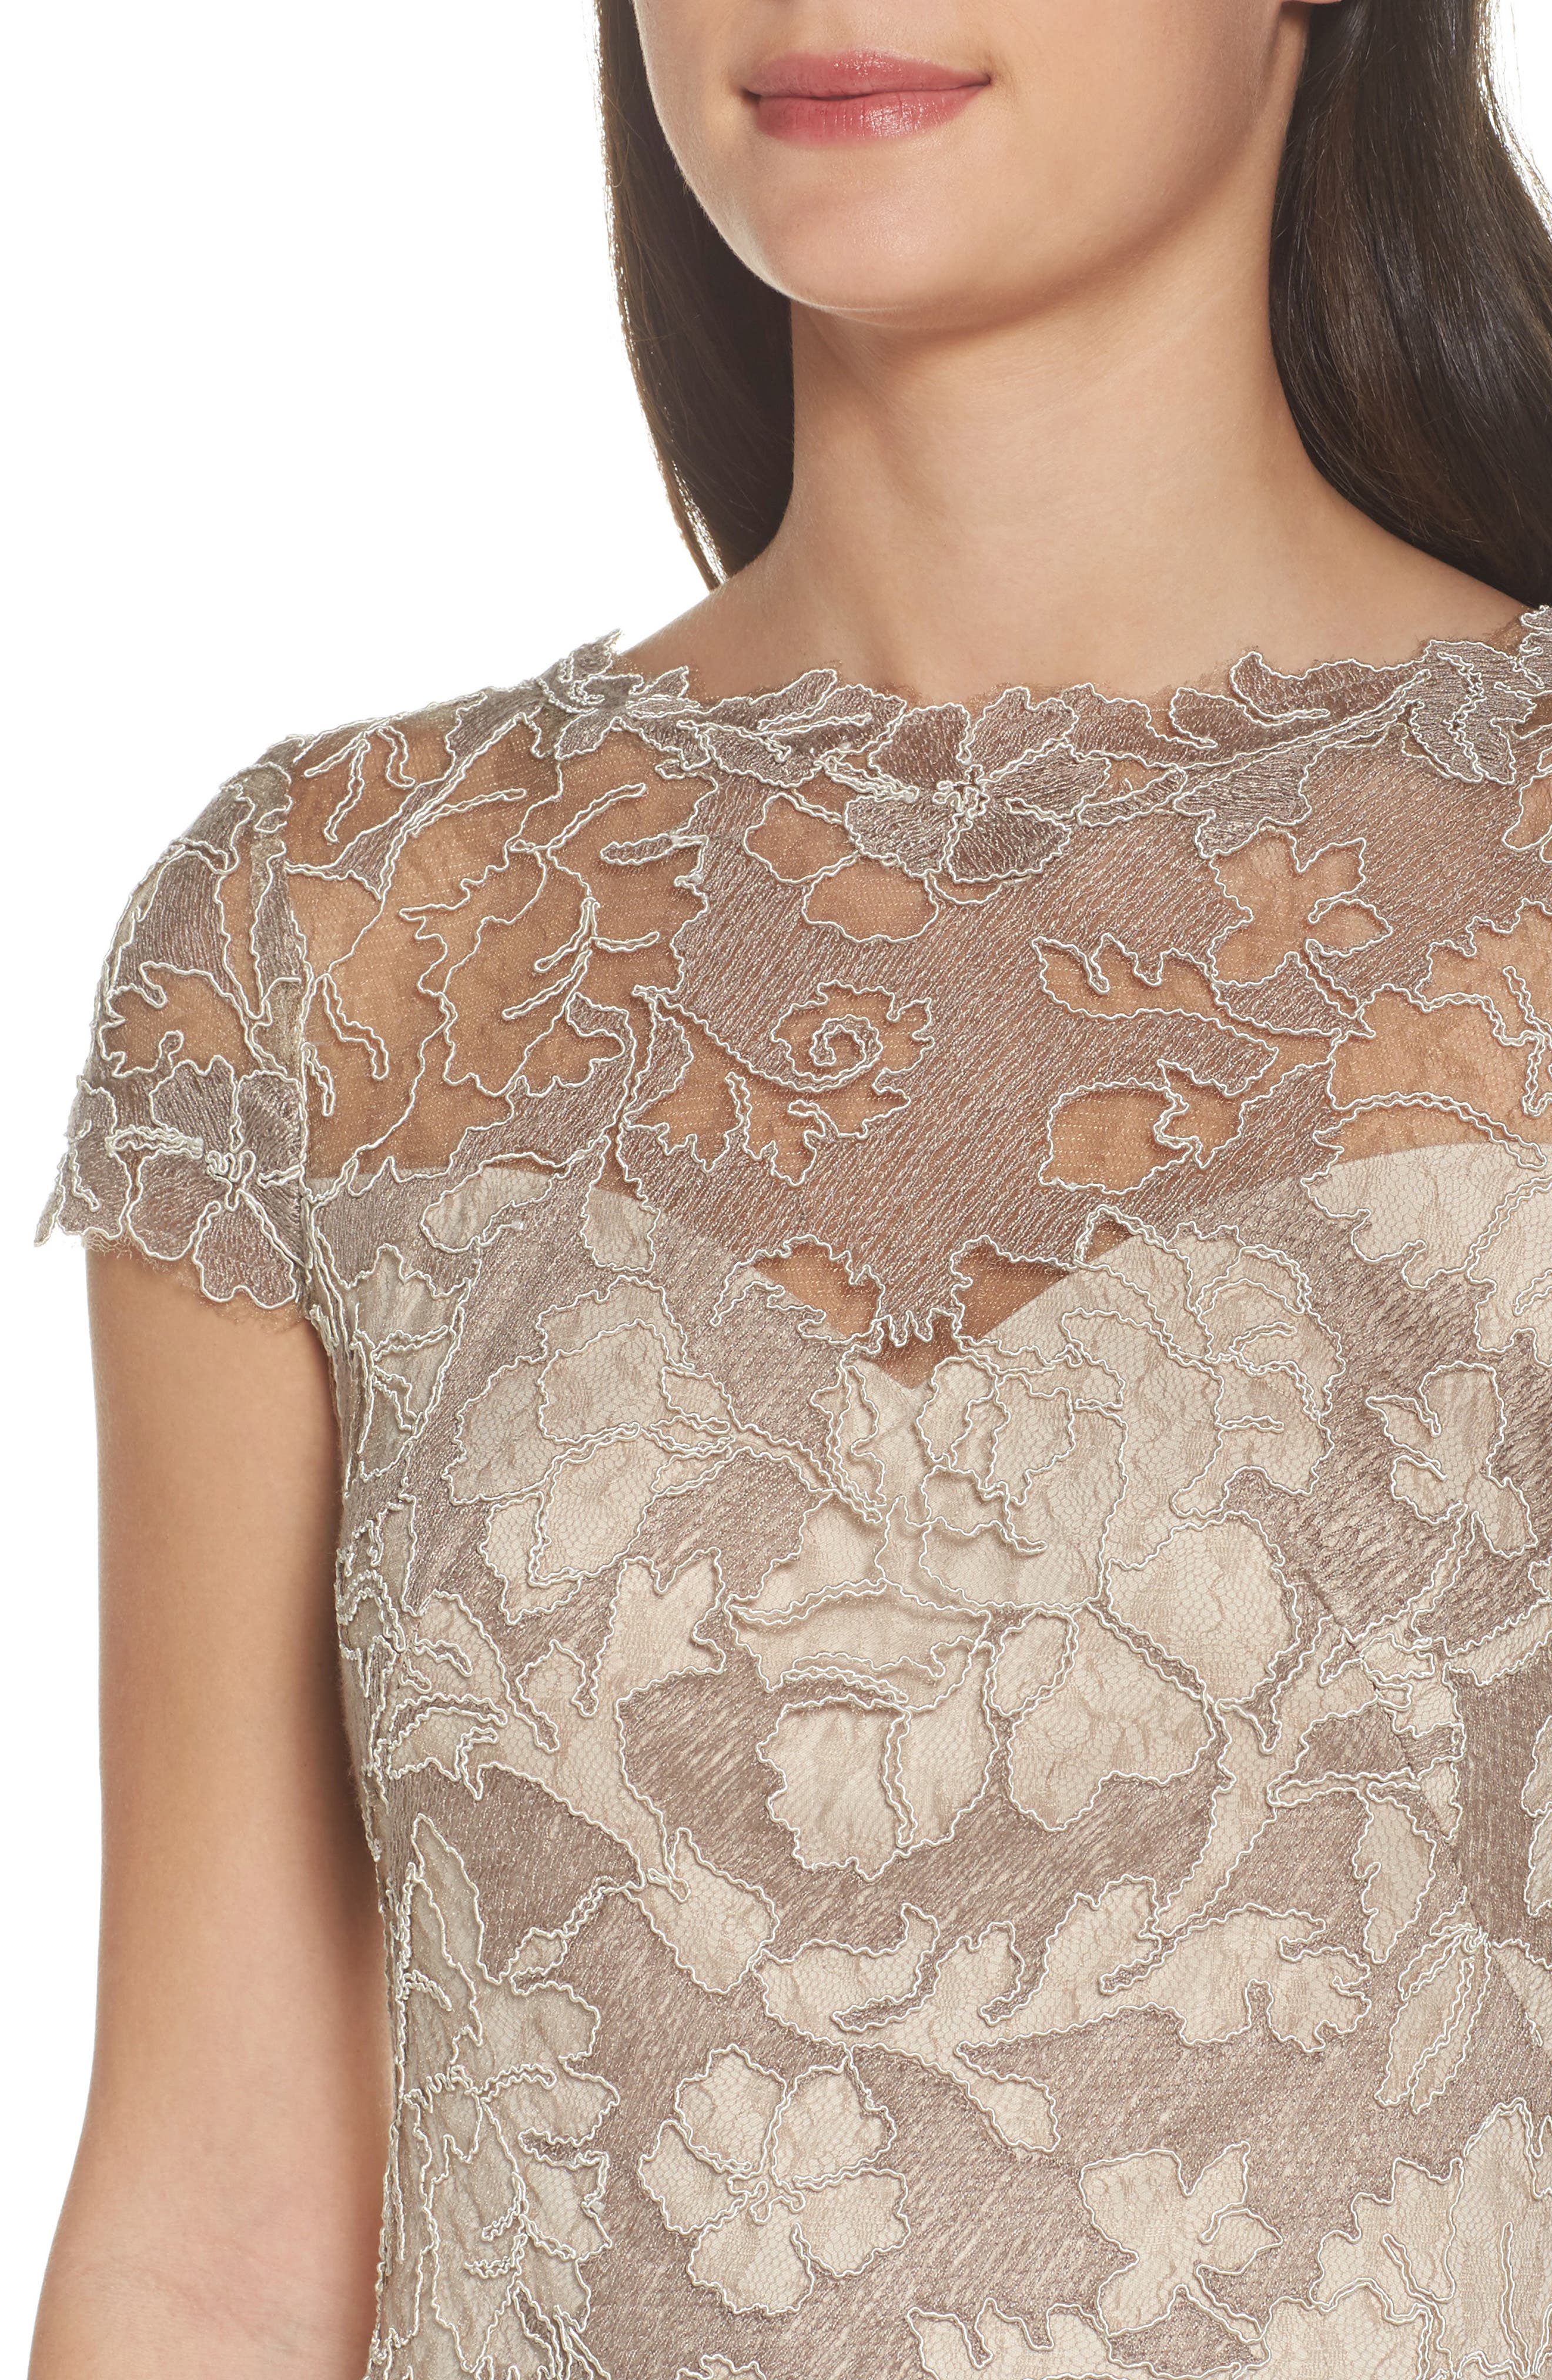 Embroidered Lace Sheath Dress,                             Alternate thumbnail 4, color,                             261